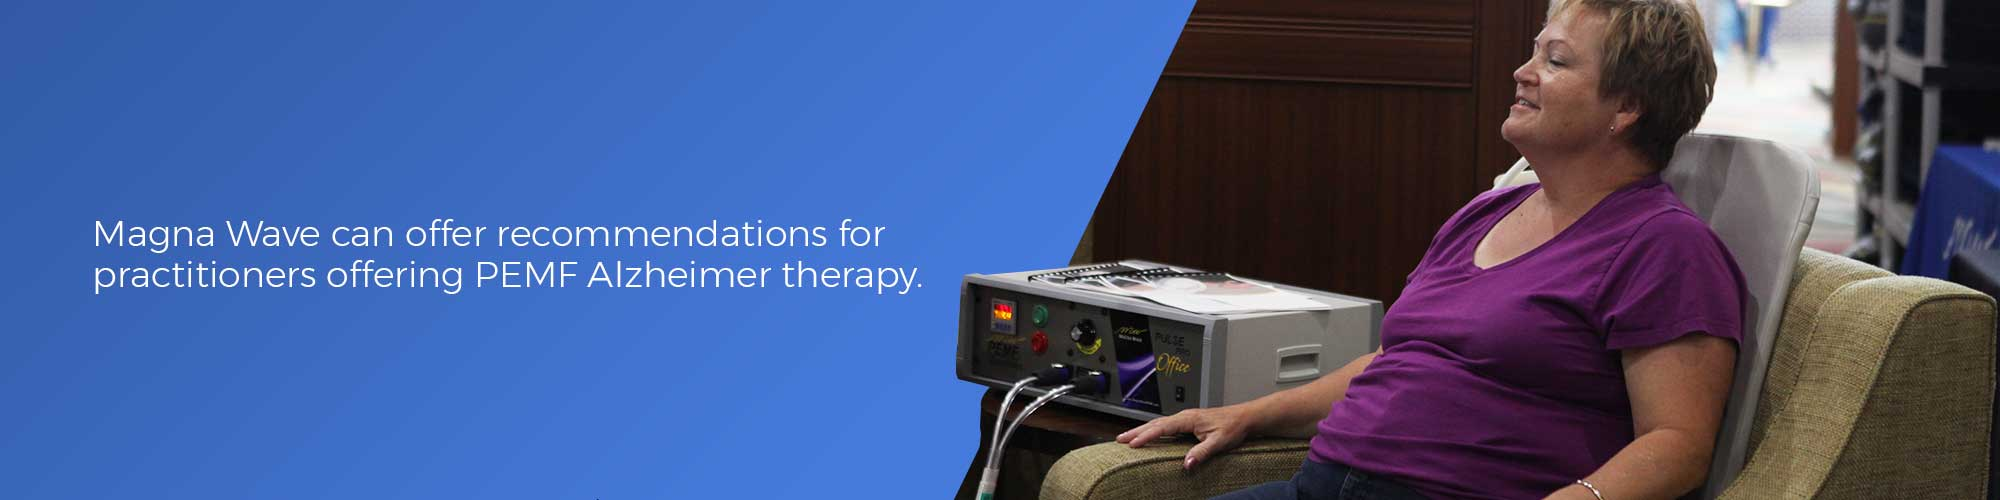 Magna Wave can offer recommendations for practitioners offering PEMF Alzheimer therapy.